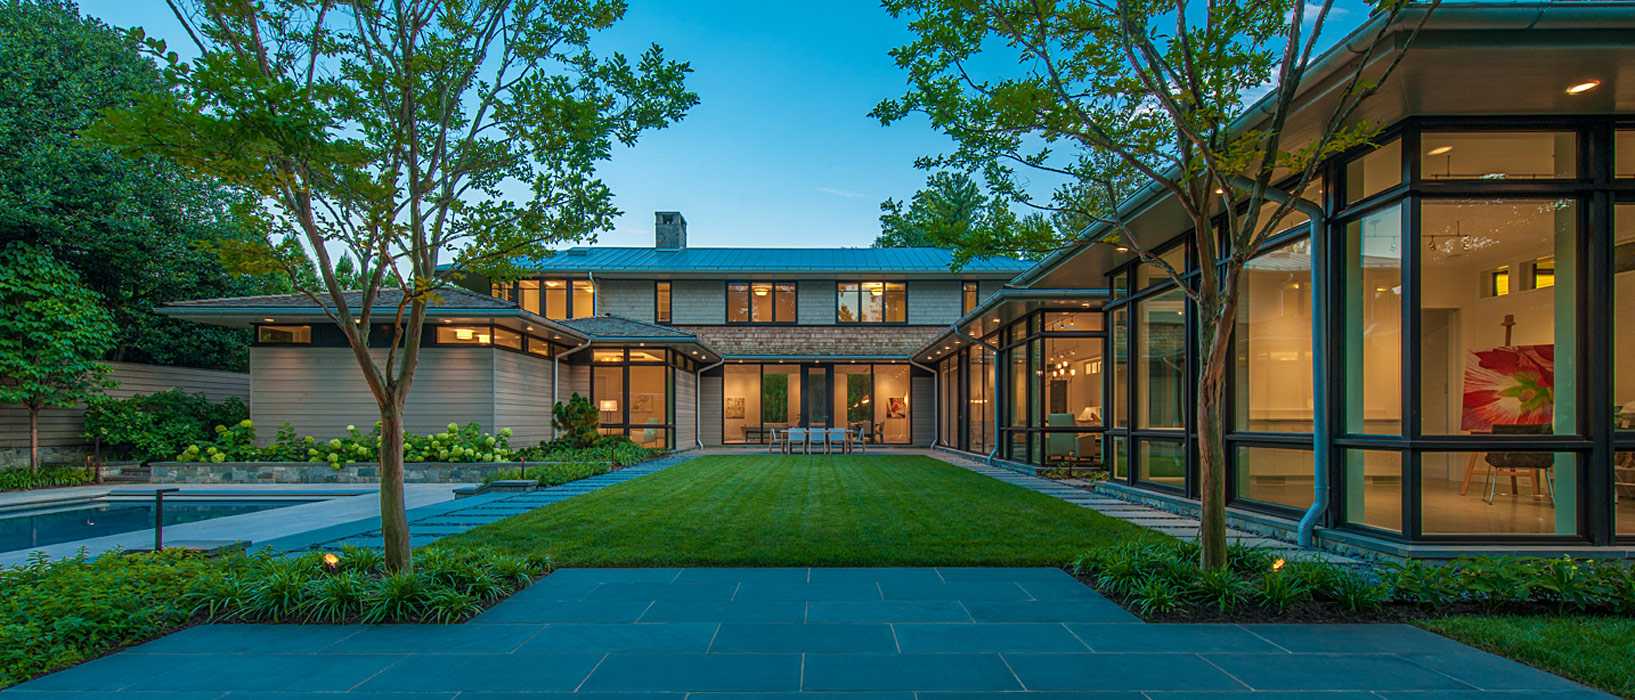 Edgemoor Residence, Custom Home by Peterson and Collins Builders